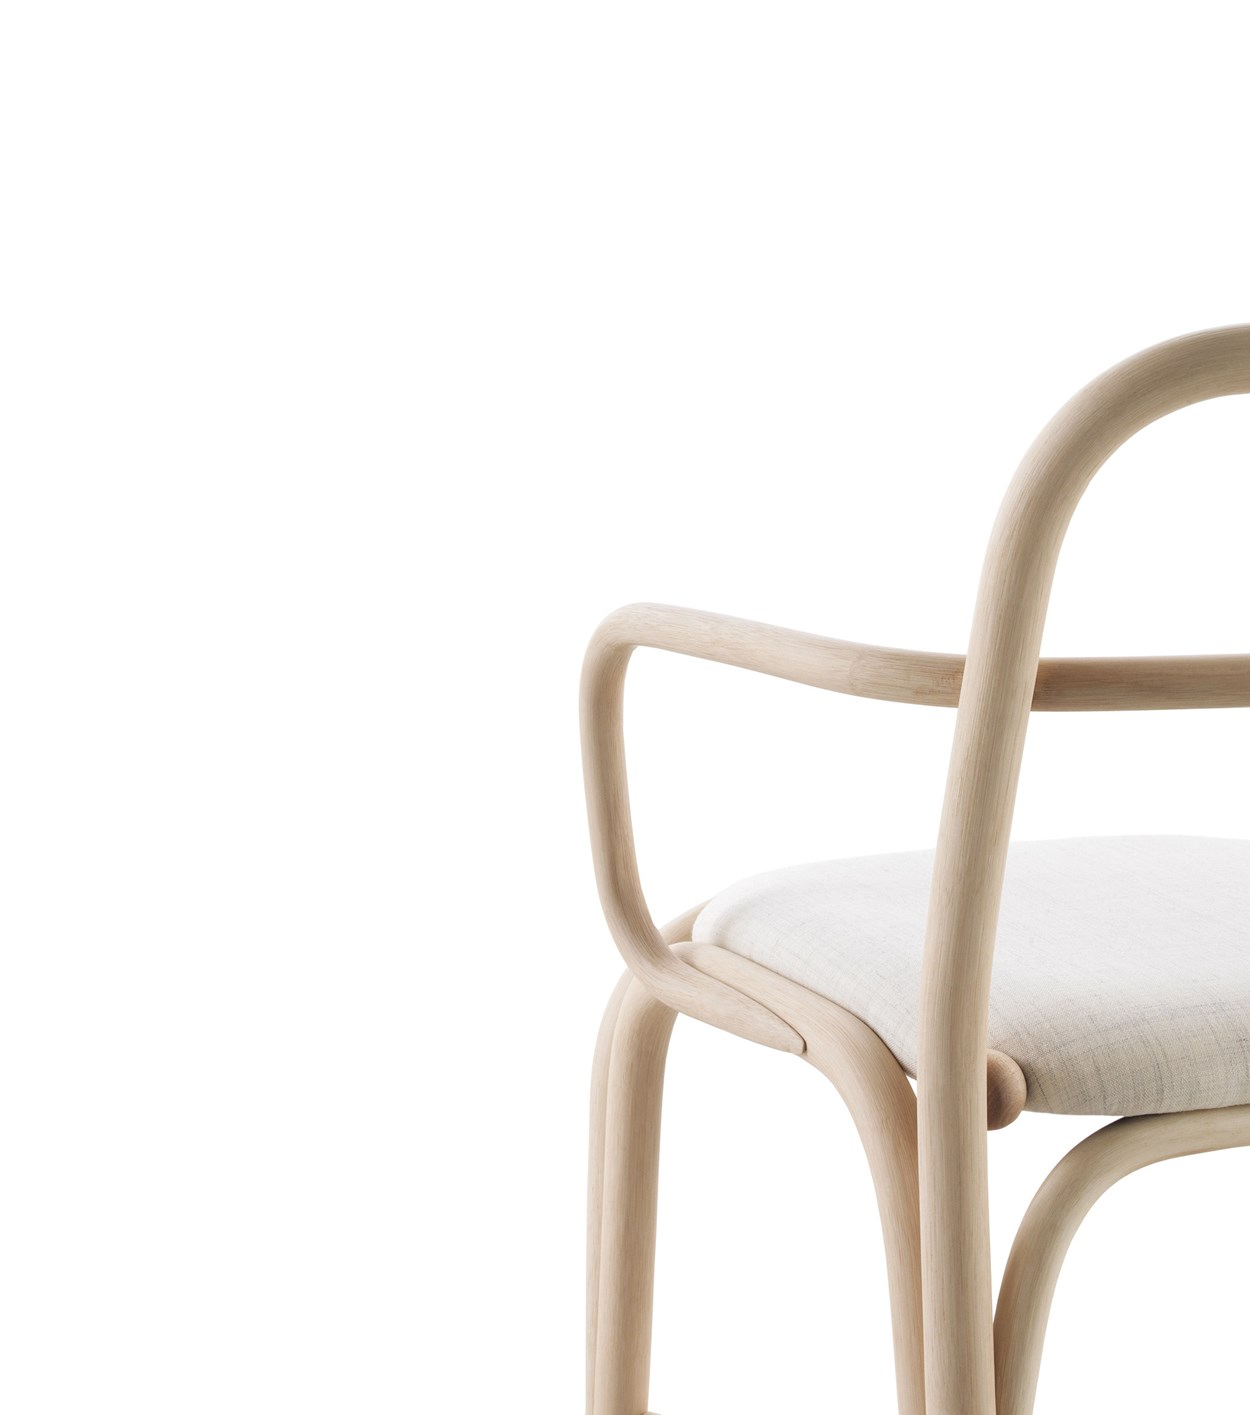 expormim-fontal-indoor-chair-oscar-tusquets-banca.jpg